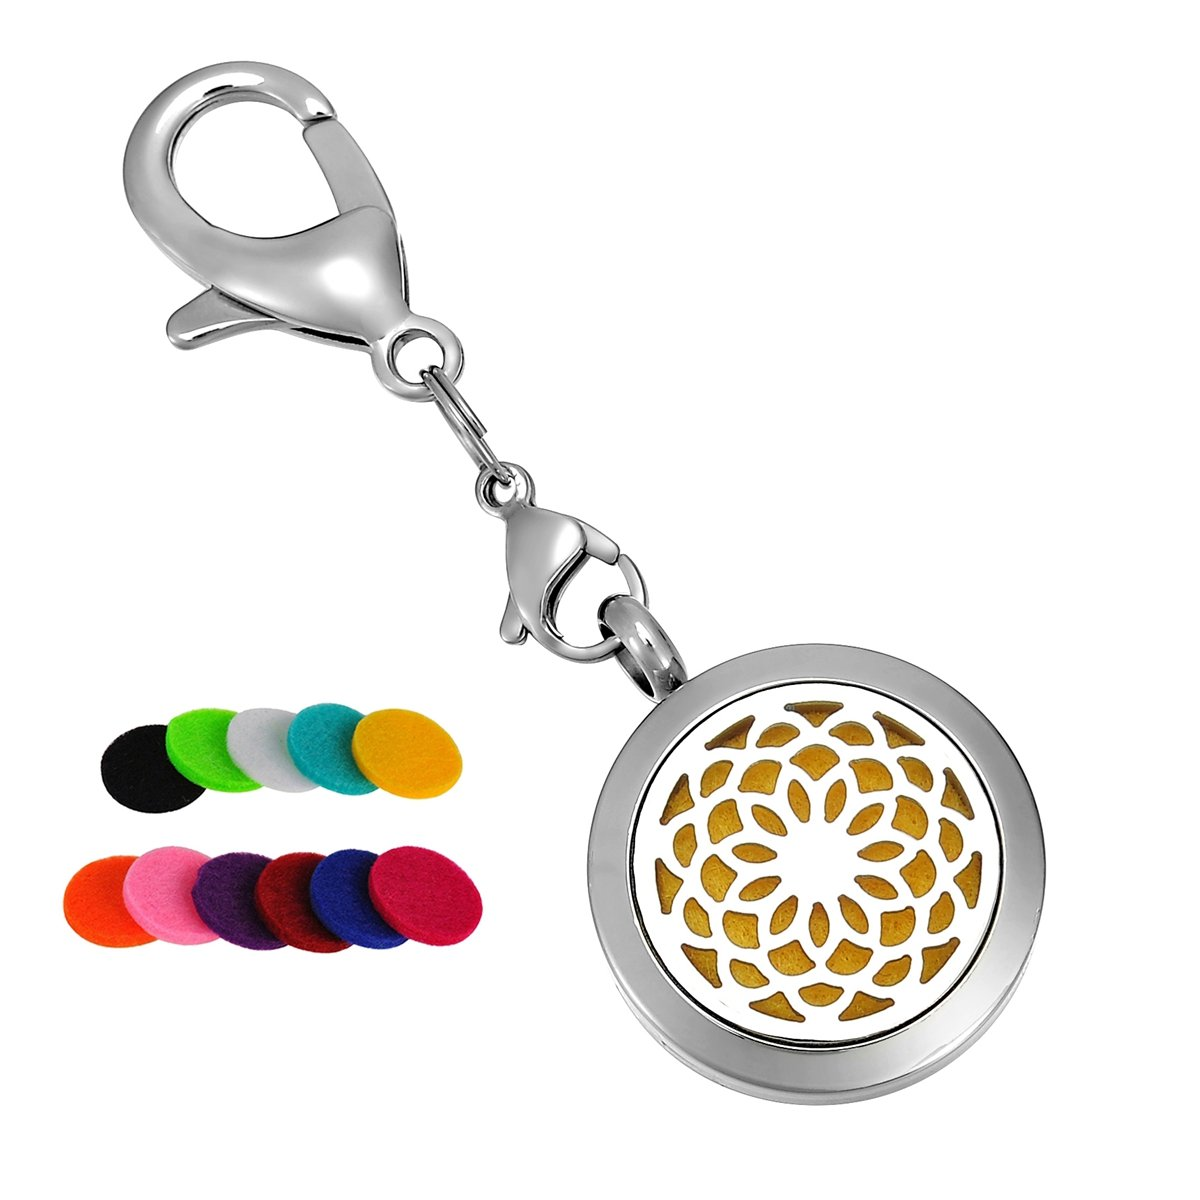 HooAMI Aromatherapy Essential Oil Diffuser Necklace-Stainless Steel Sunflower Locket Pendant, 11 Refill Pads TY BETY104132+BETY110351